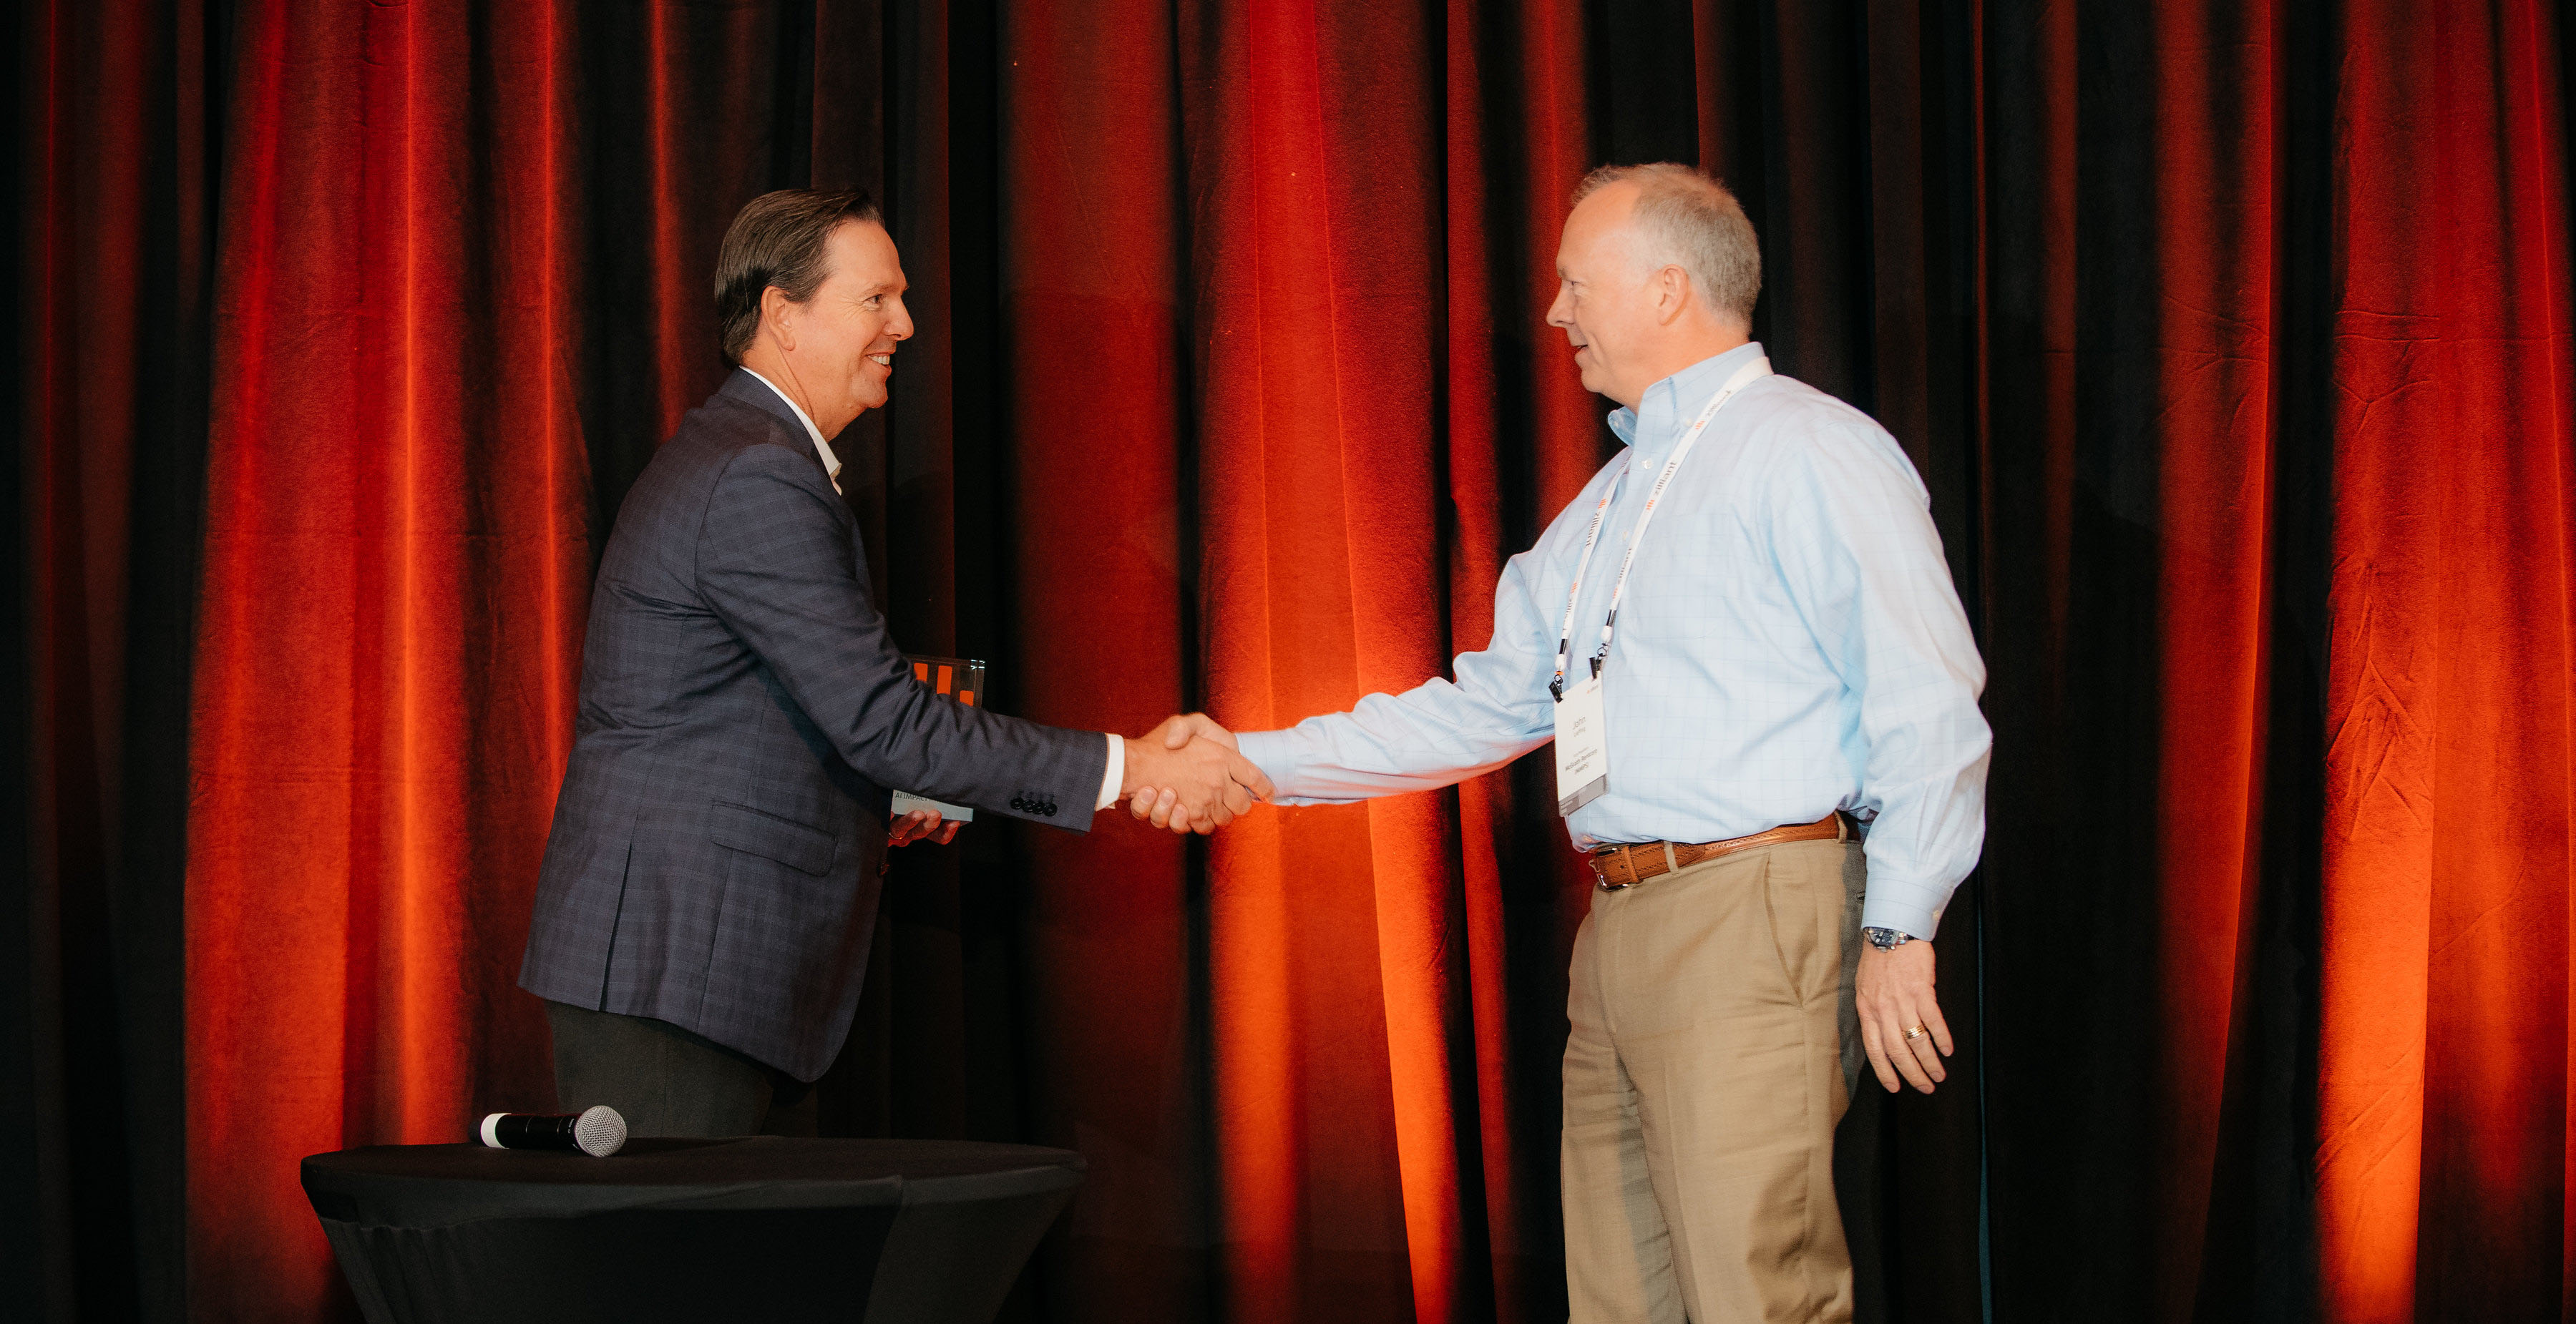 IMI Precision Engineering Sales and Marketing Director Paul Umpleby accepts the AI Process Integration Award from Zilliant CEO Greg Peters.